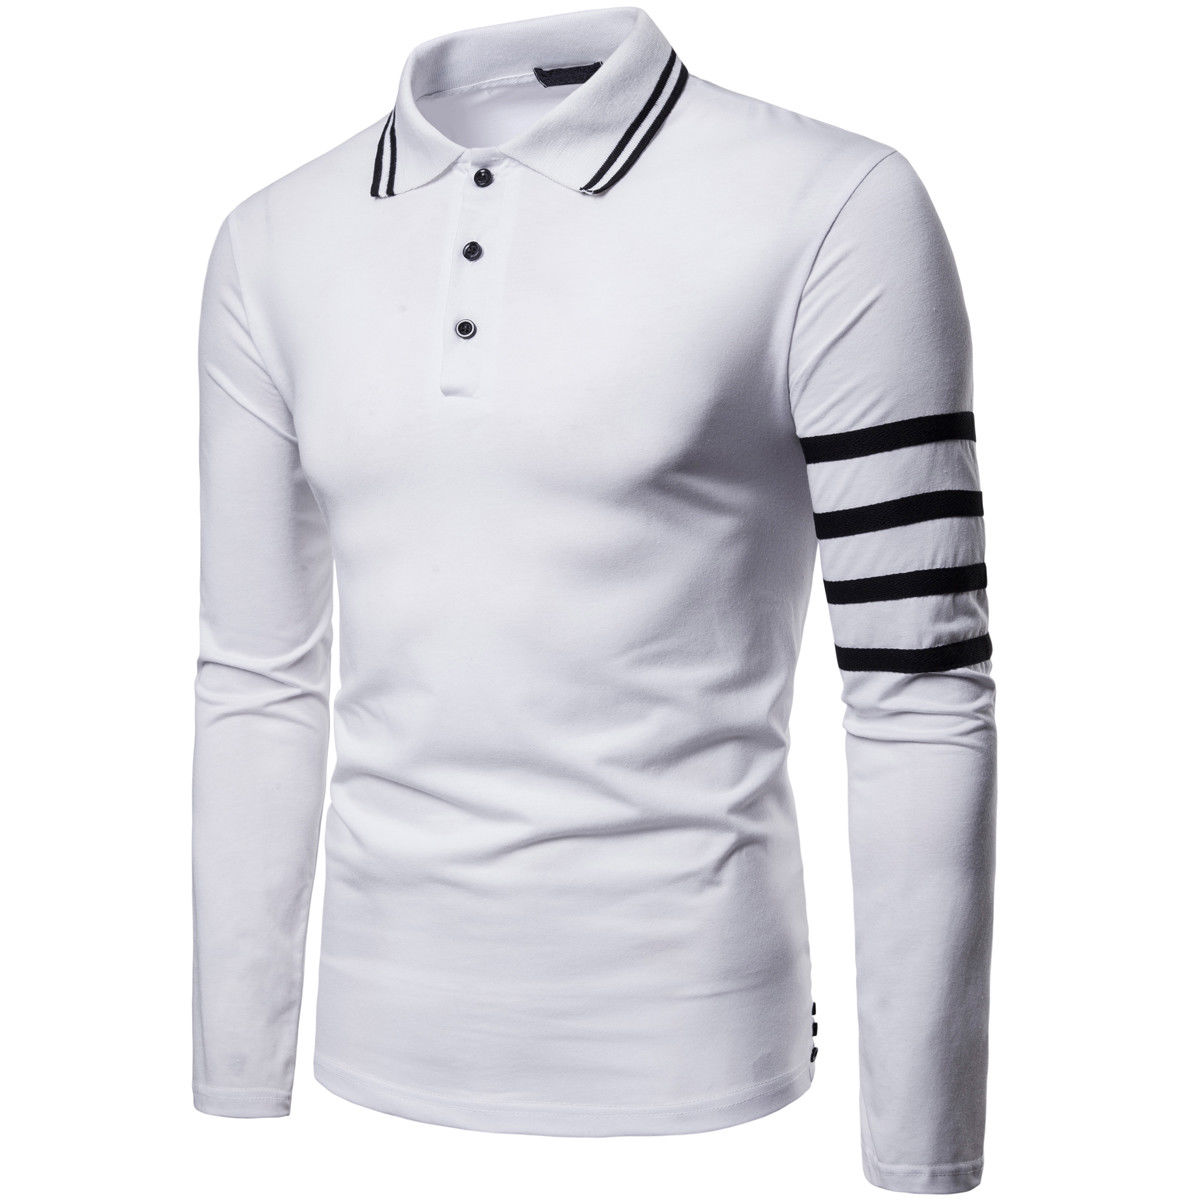 Autumn New Arrival Mens Turn Down Collar Long Sleeve Shirts Casual Slim Fit Stripe Golf Shirt Tops 3 Colors